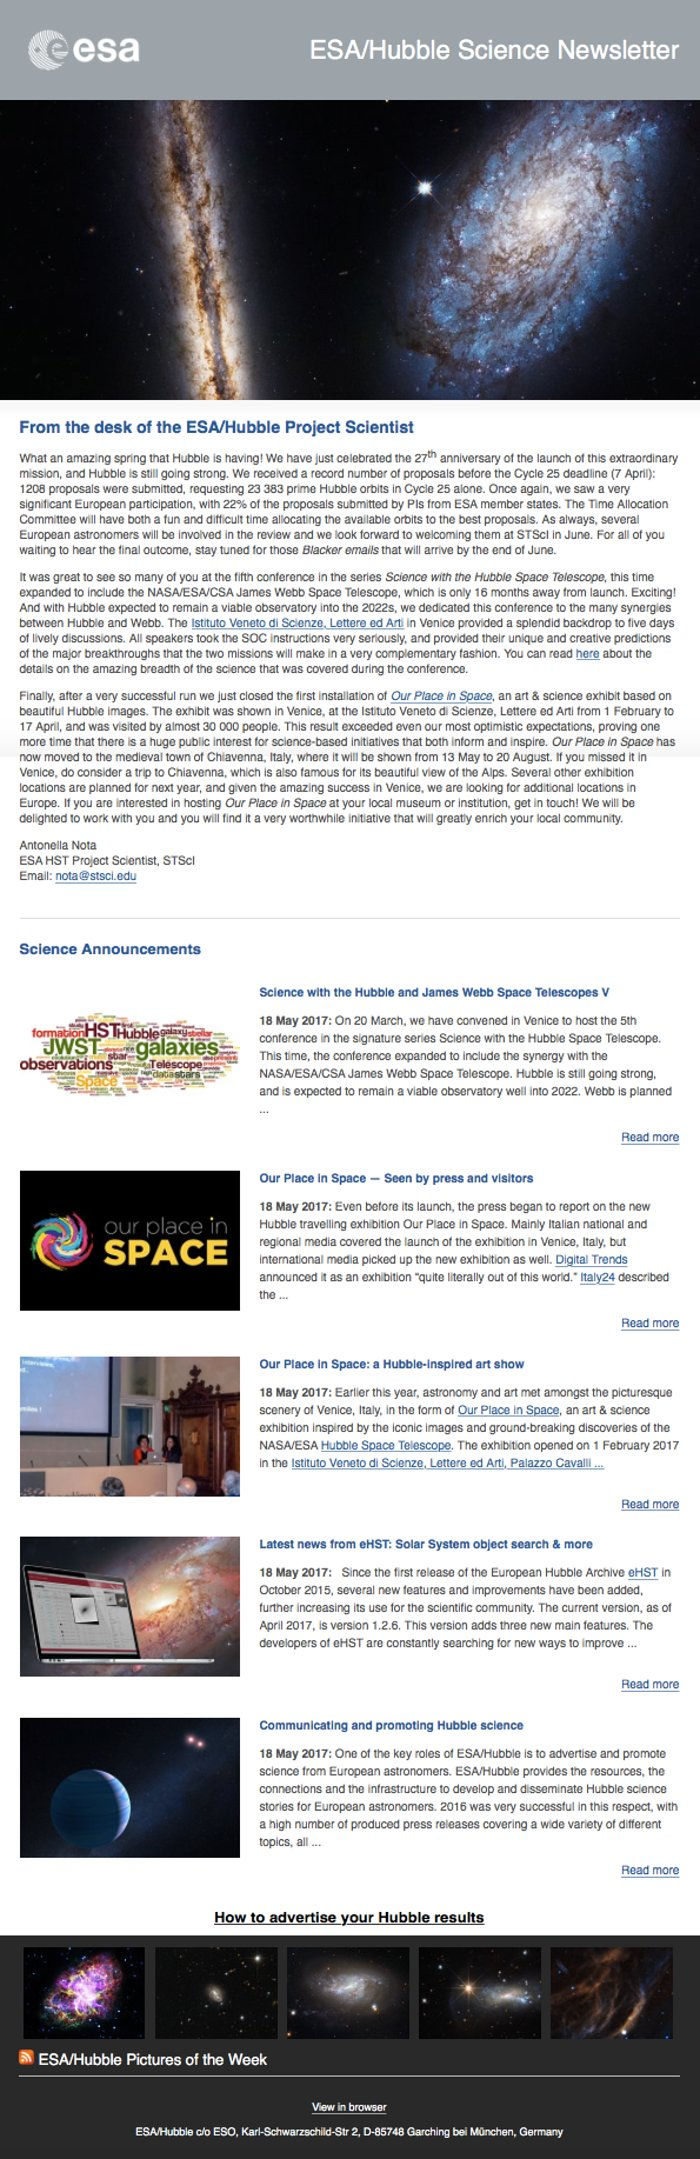 Screenshot of the May 2017 issue of ESA/Hubble Science Newsletter